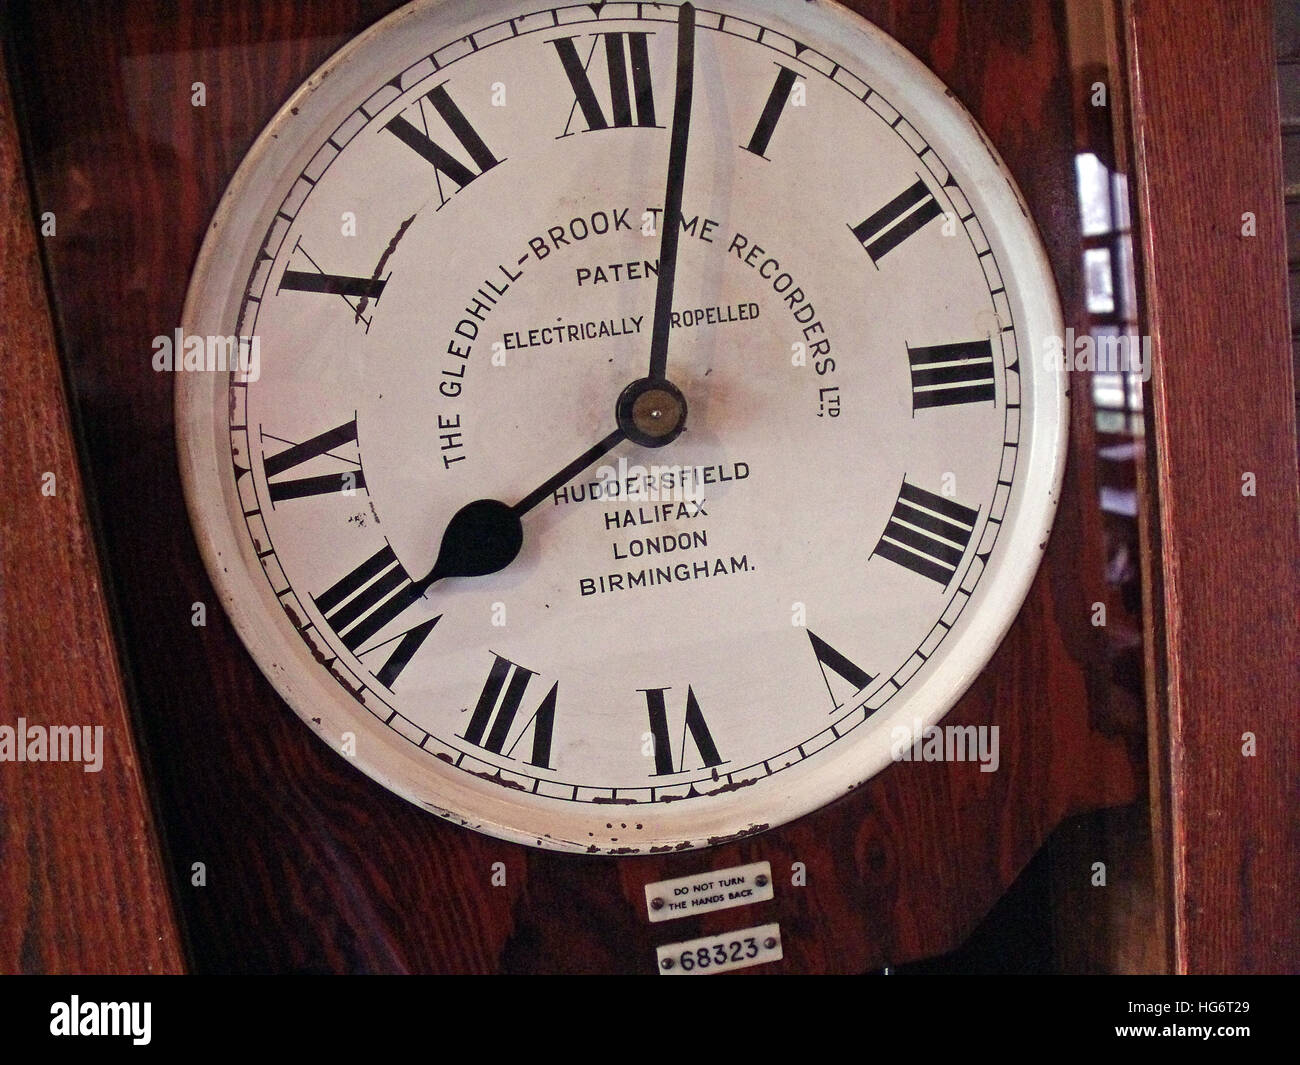 wood,hands,hand,mechanical,time,recorder,recorders,punch,in,Machine,Gledhill,Brook,Time